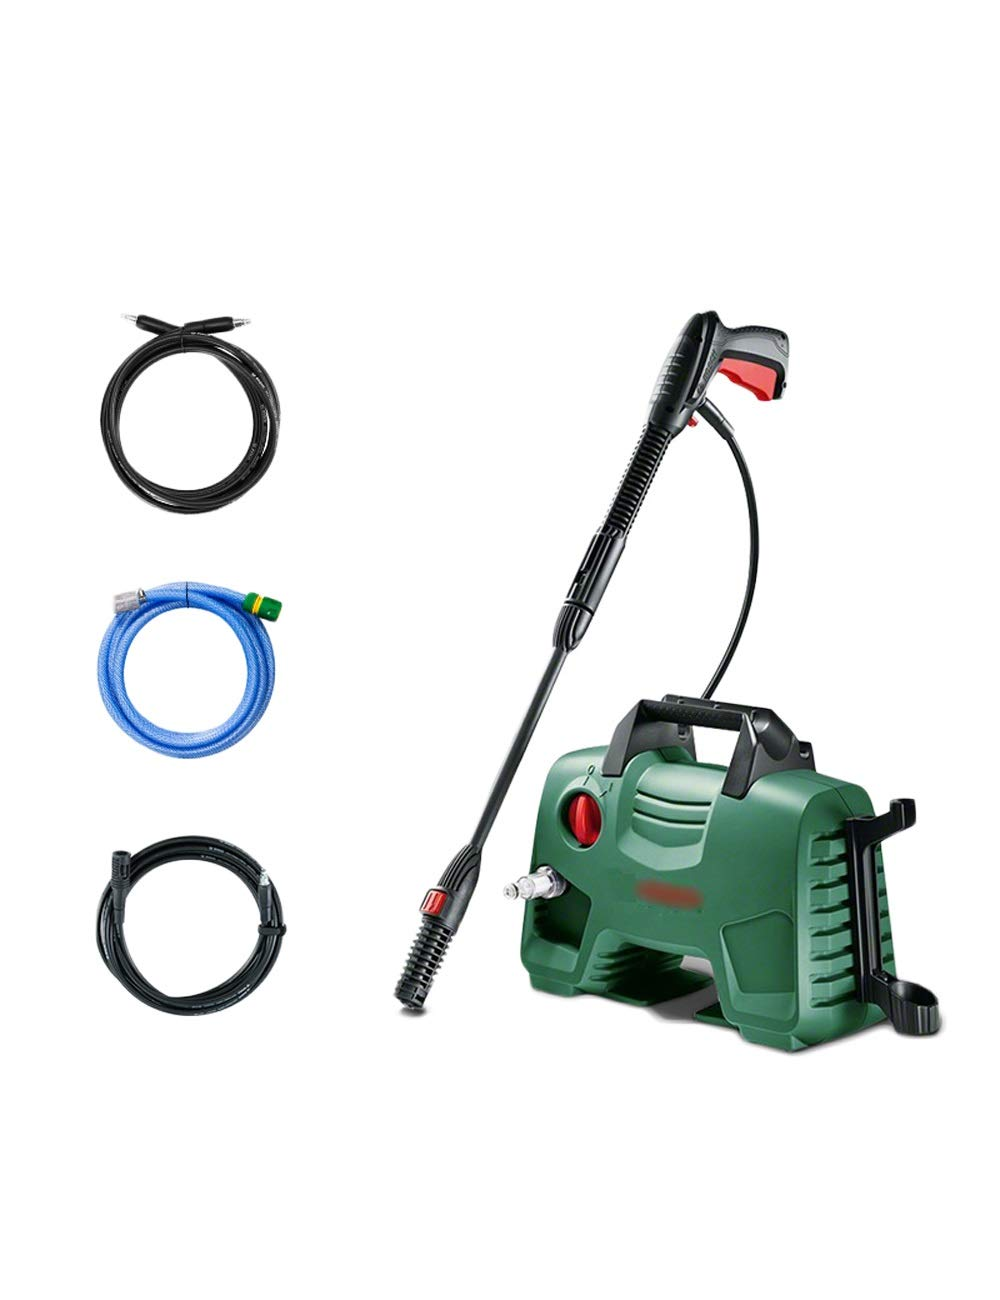 High Pressure Water Gun, Household Portable Power Water Gun, High Pressure Cleaner Power Tool 3 Kinds of Nozzles Compact (Color : B) by Wp-dq